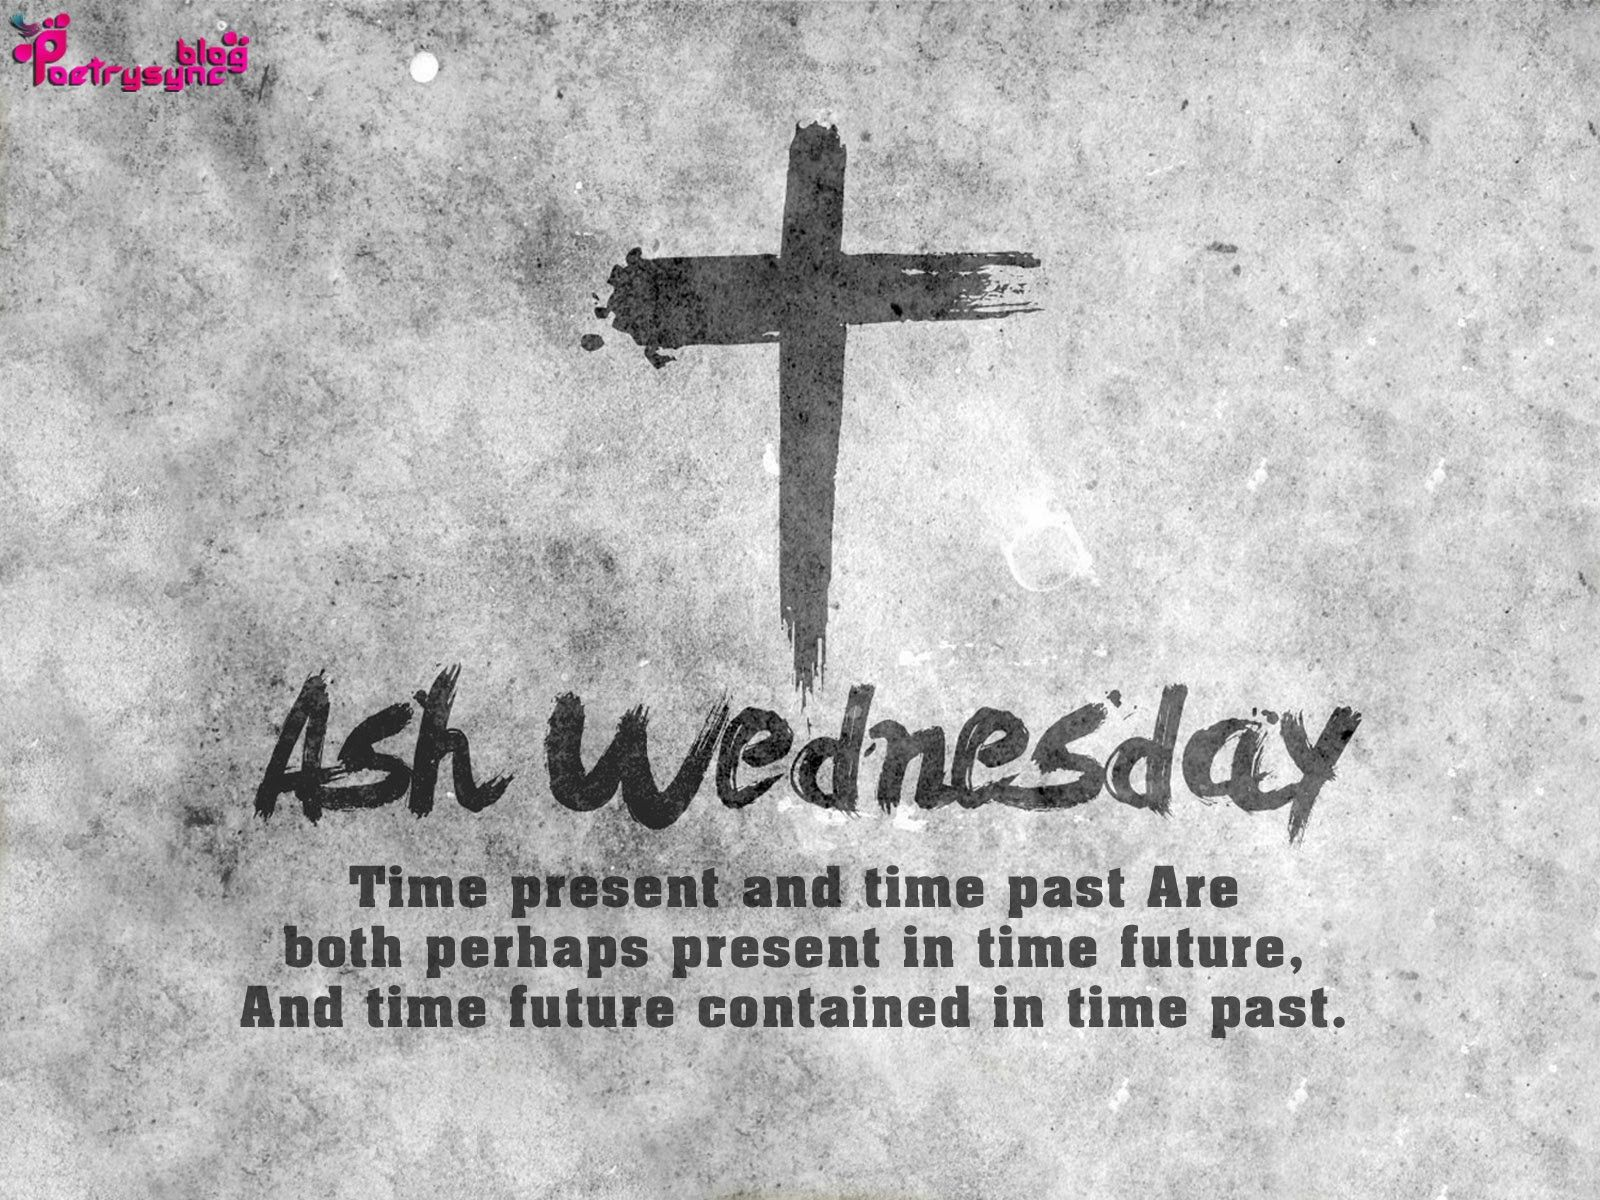 Ash wednesday wishes and greetings picture with quote saying ash ash wednesday wishes and greetings picture with quote saying buycottarizona